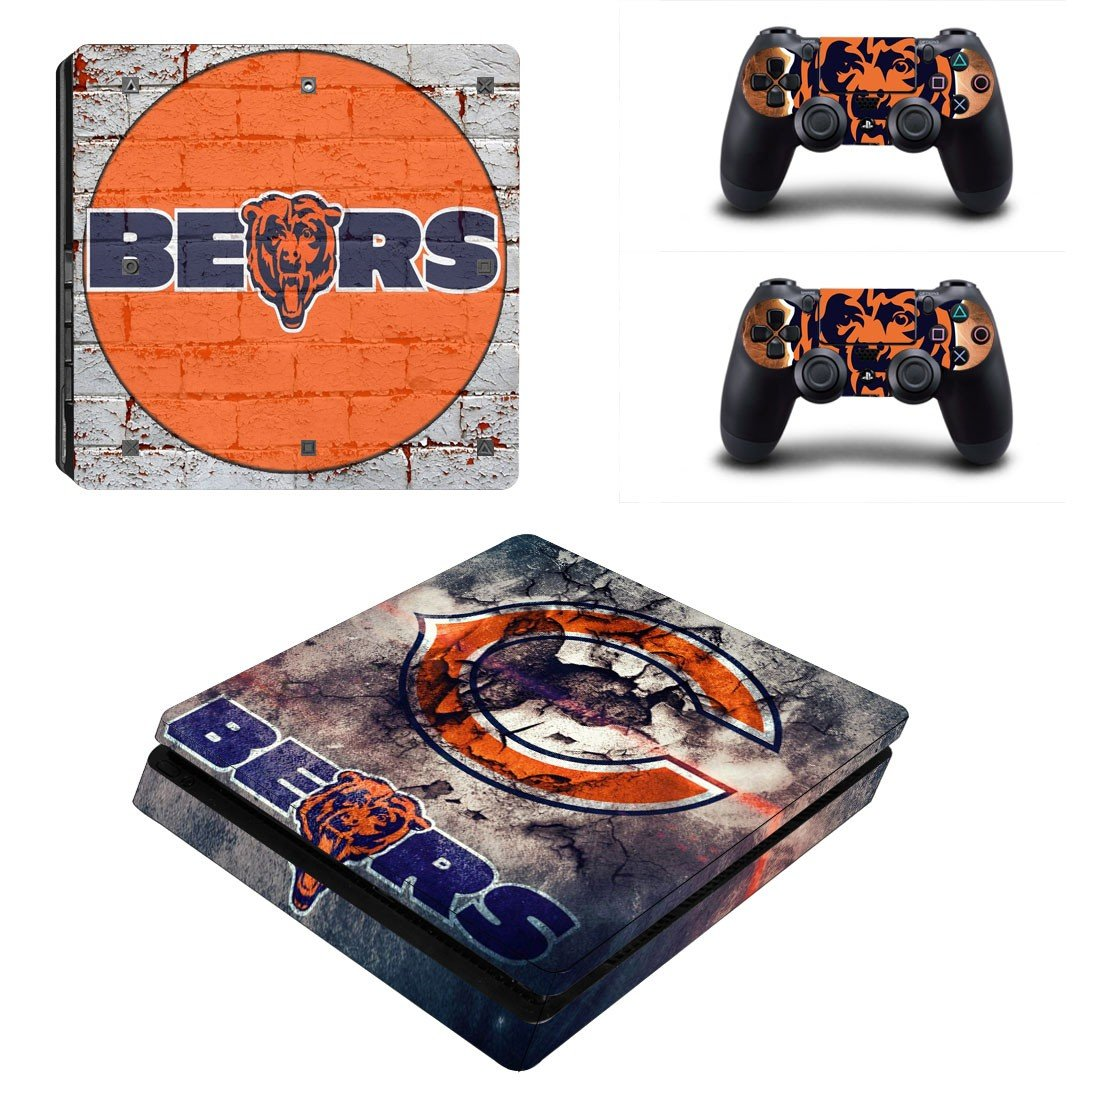 Chicago Bears Play Station 4 slim skin decal for console and 2 controllers